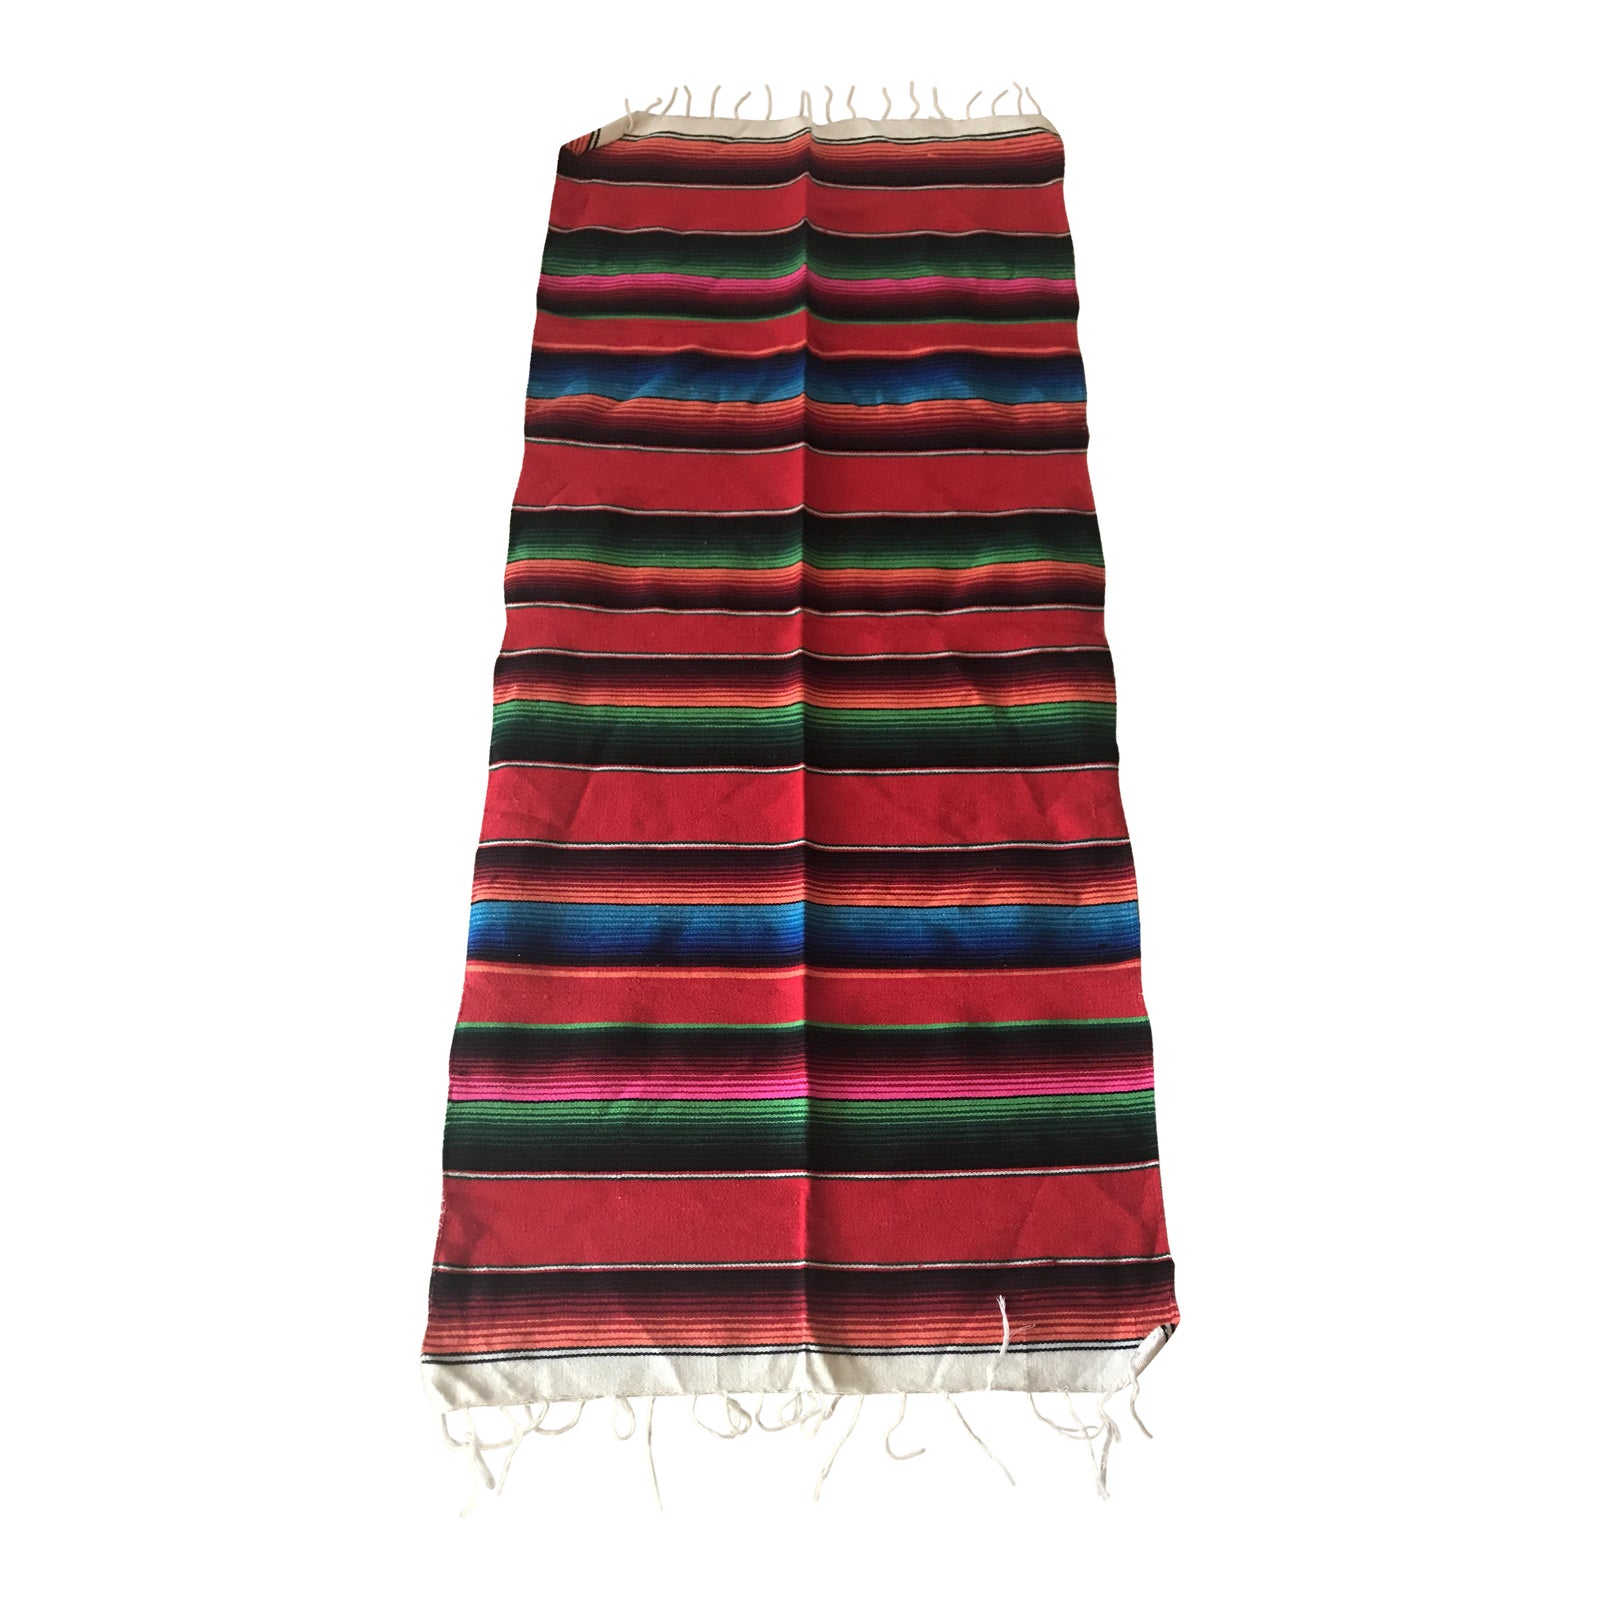 Enjoyable Mexican Blanket Table Runner Download Free Architecture Designs Intelgarnamadebymaigaardcom